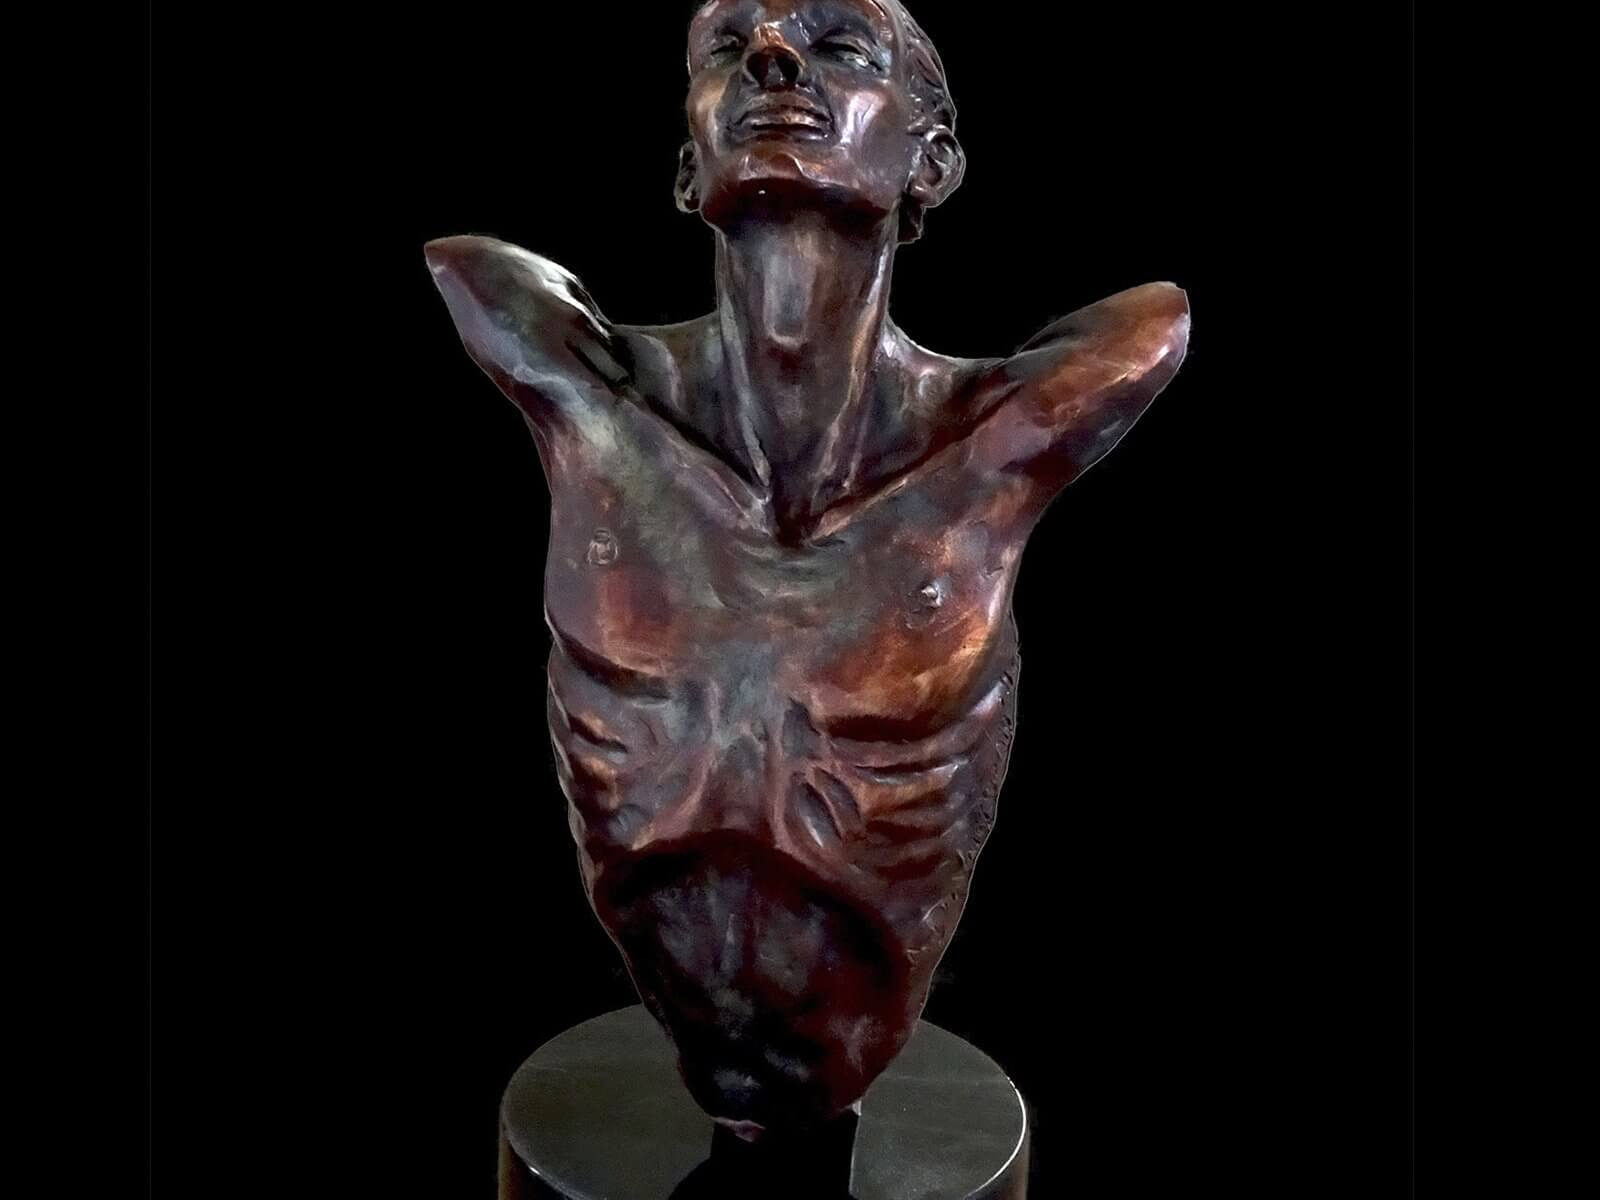 Echoes bust is a bronze sculpture created by Andrew DeVries copyright 2019.